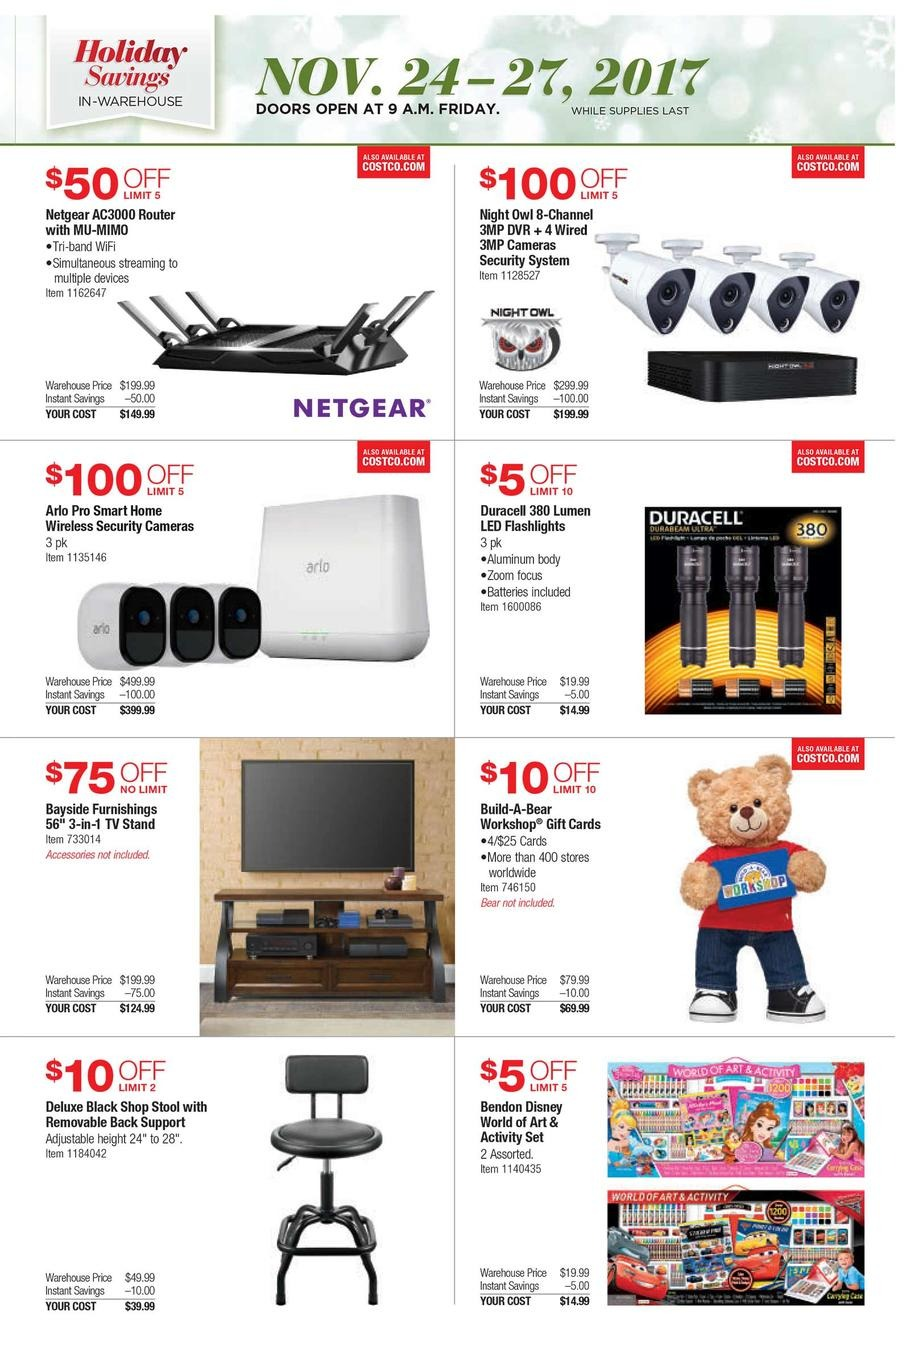 Check Out Some Of The Hottest Deals At Costco Black Friday This Year Below.